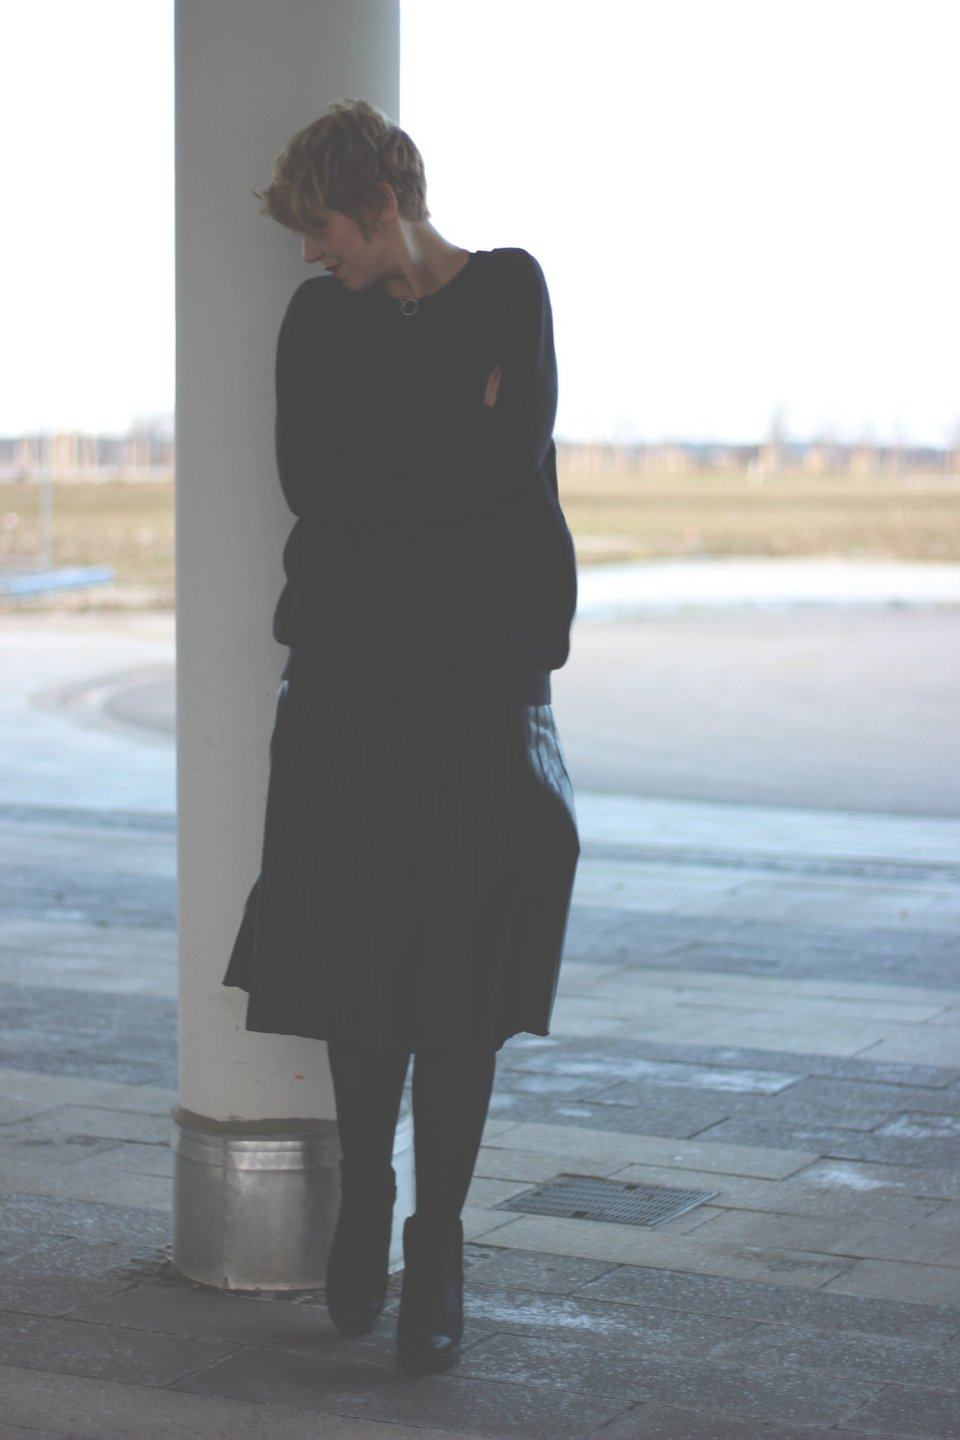 Fake leather, faltenrock, pleated skirt, schwarz, black, Tipp, Netzstrumpfhosen, Cashmere, Pullover, Boyfriendpullover